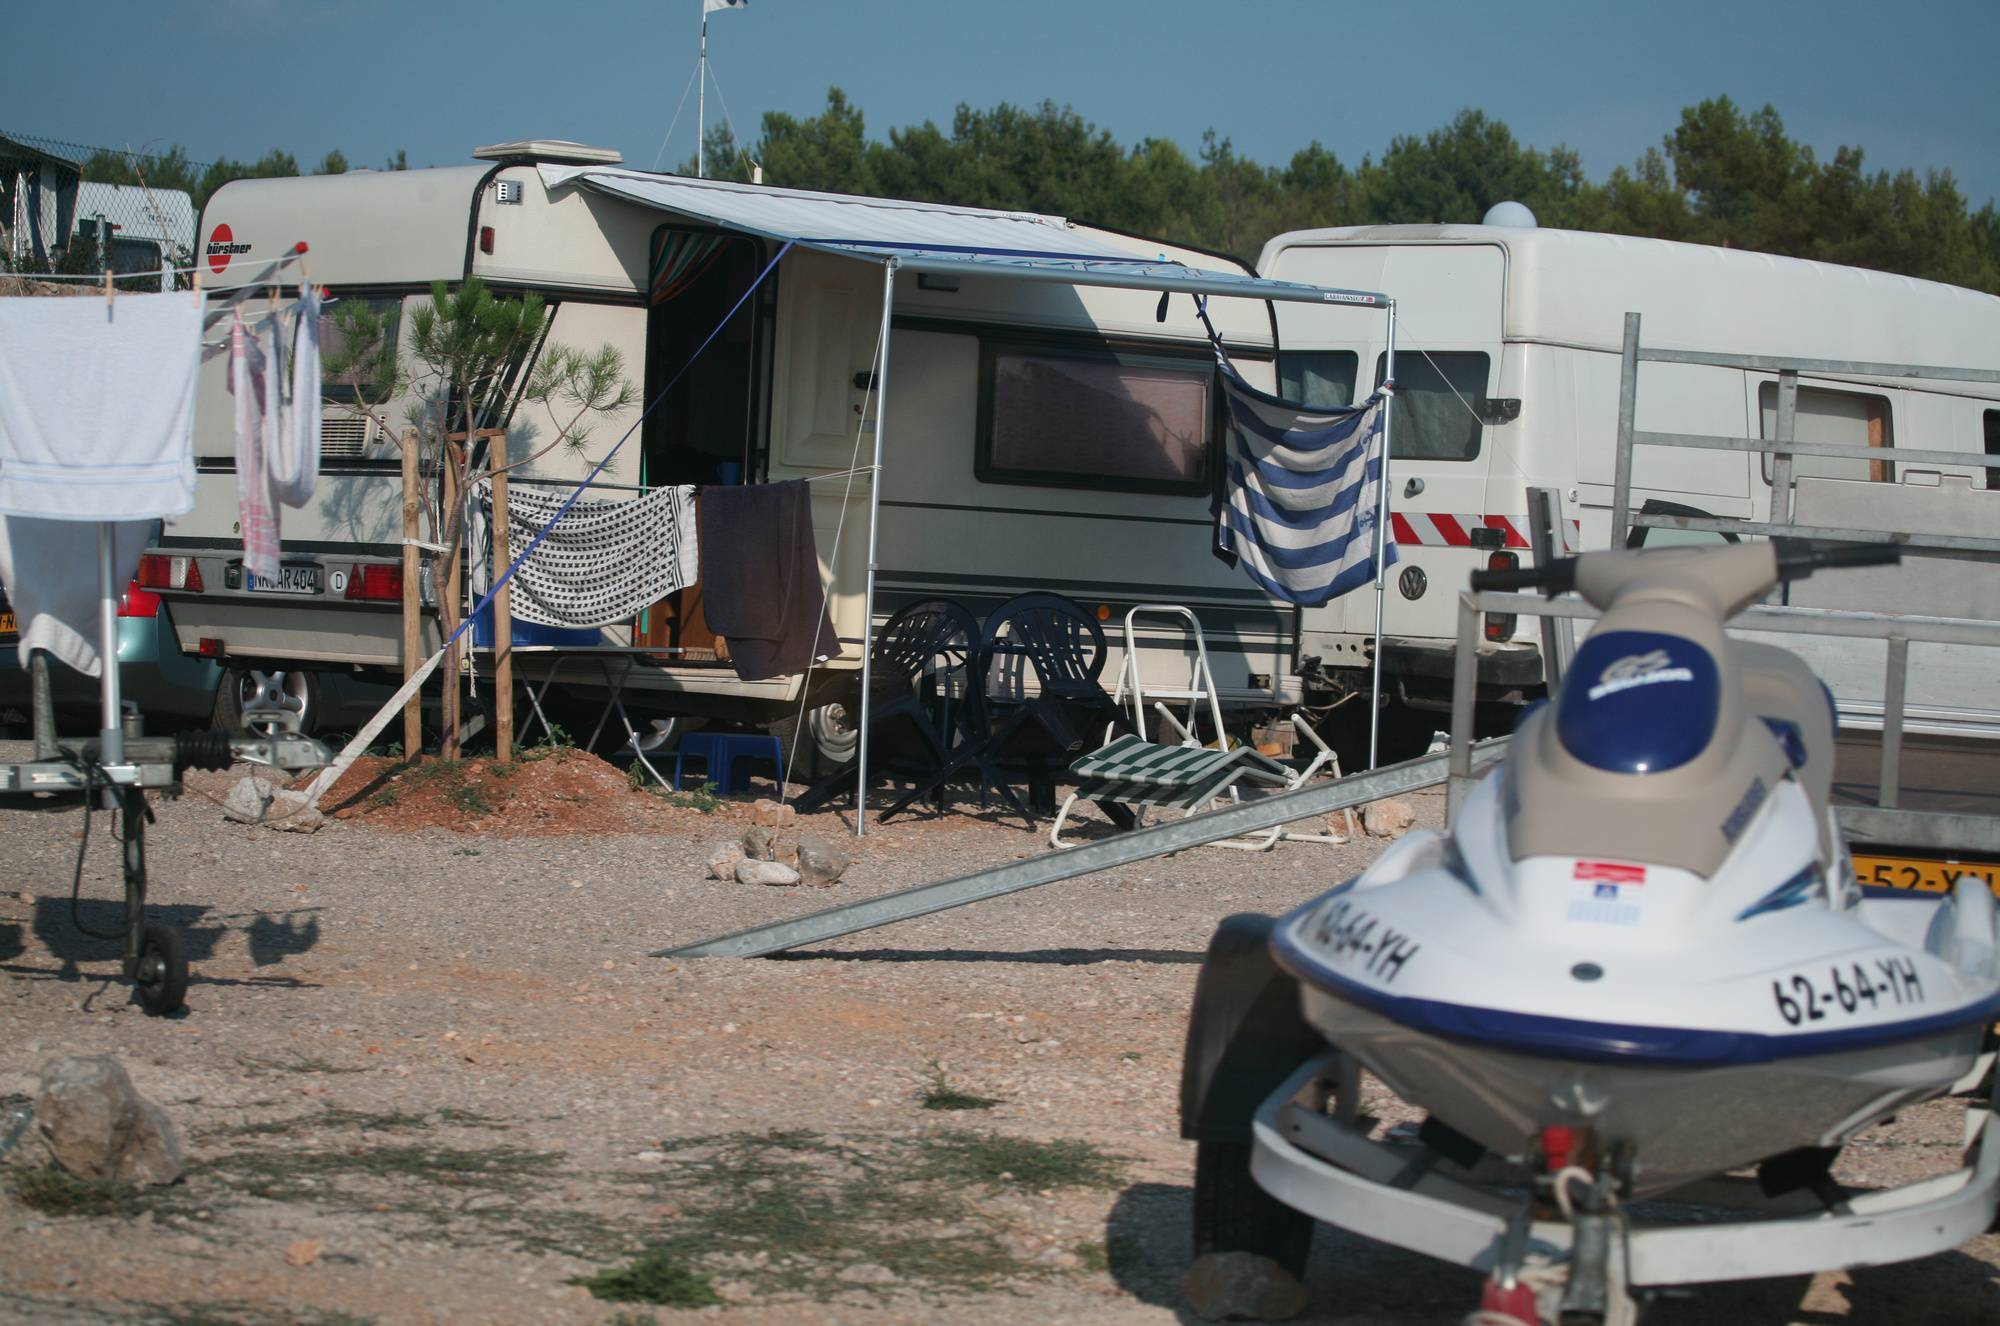 Cove Camping Scenery - 1